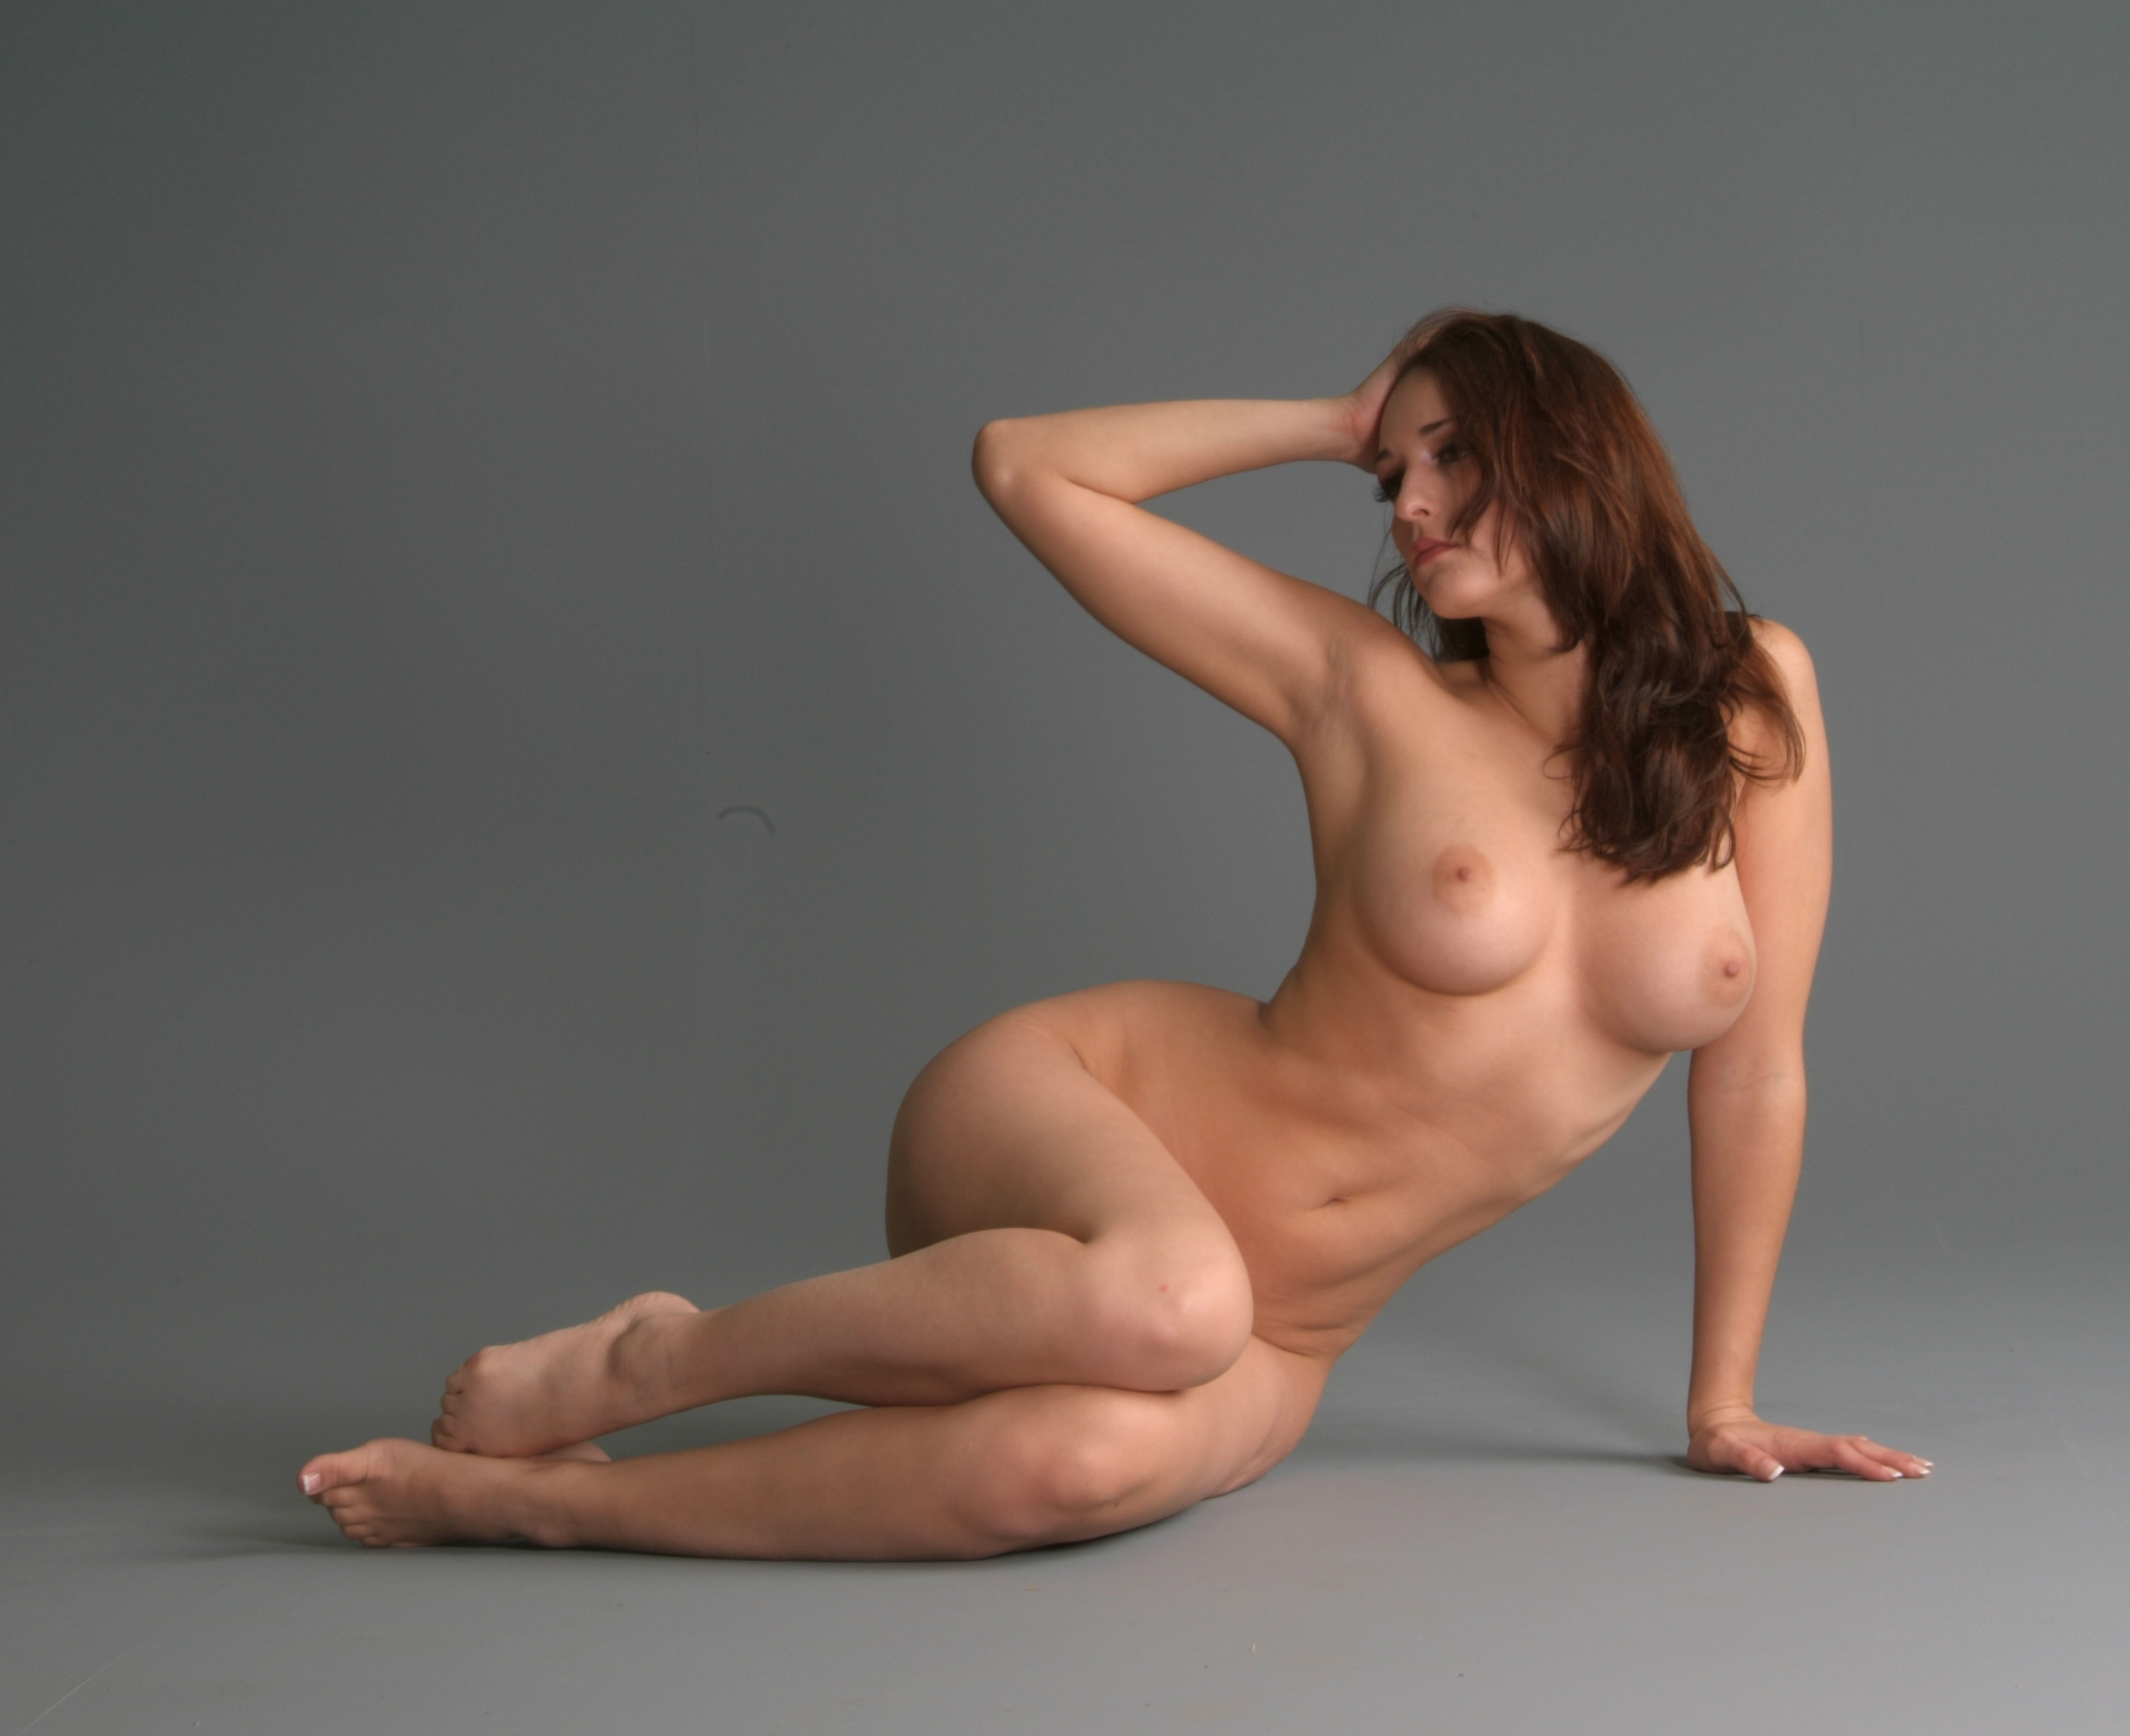 Mind nudes milf for art those fuck boots!!